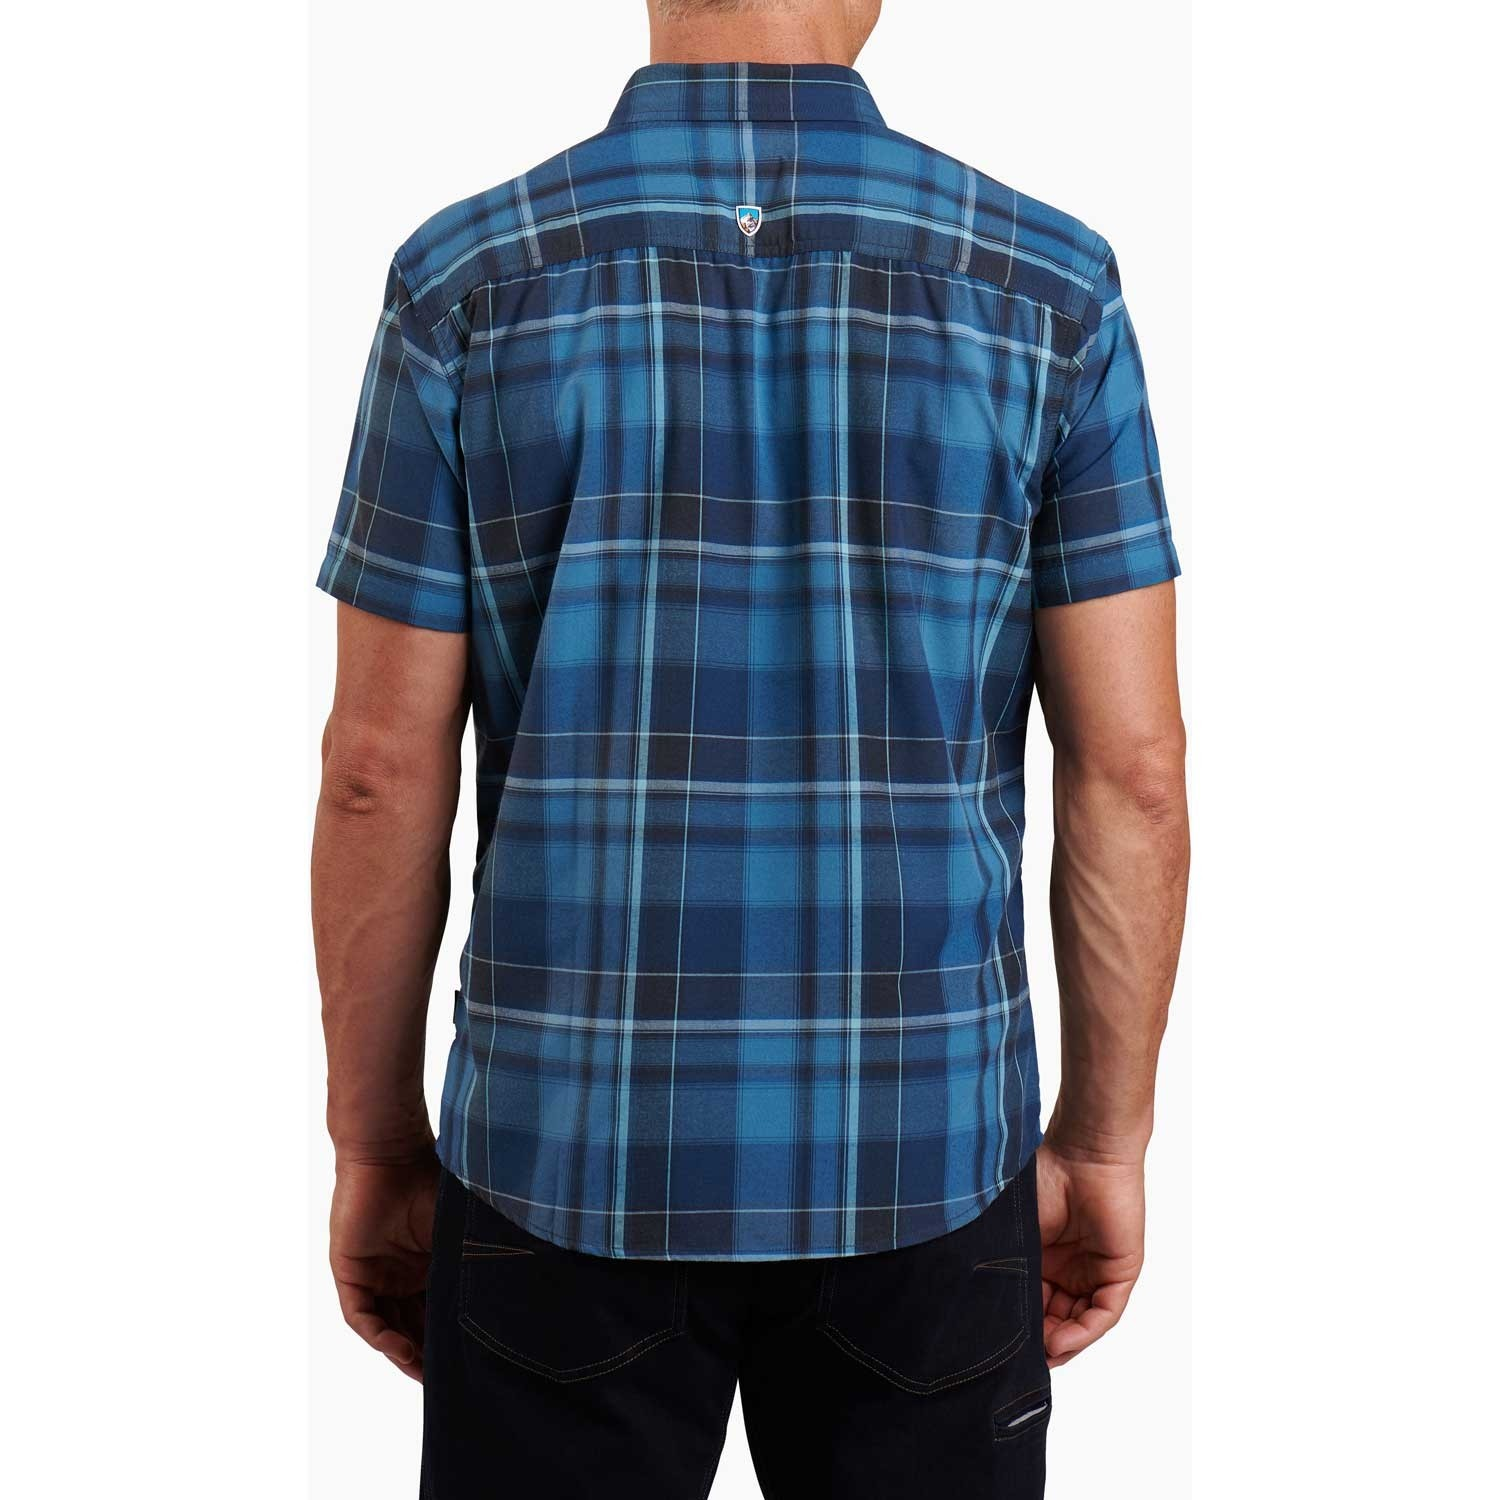 Kuhl Styk Shirt - Mens - Cobalt Blue